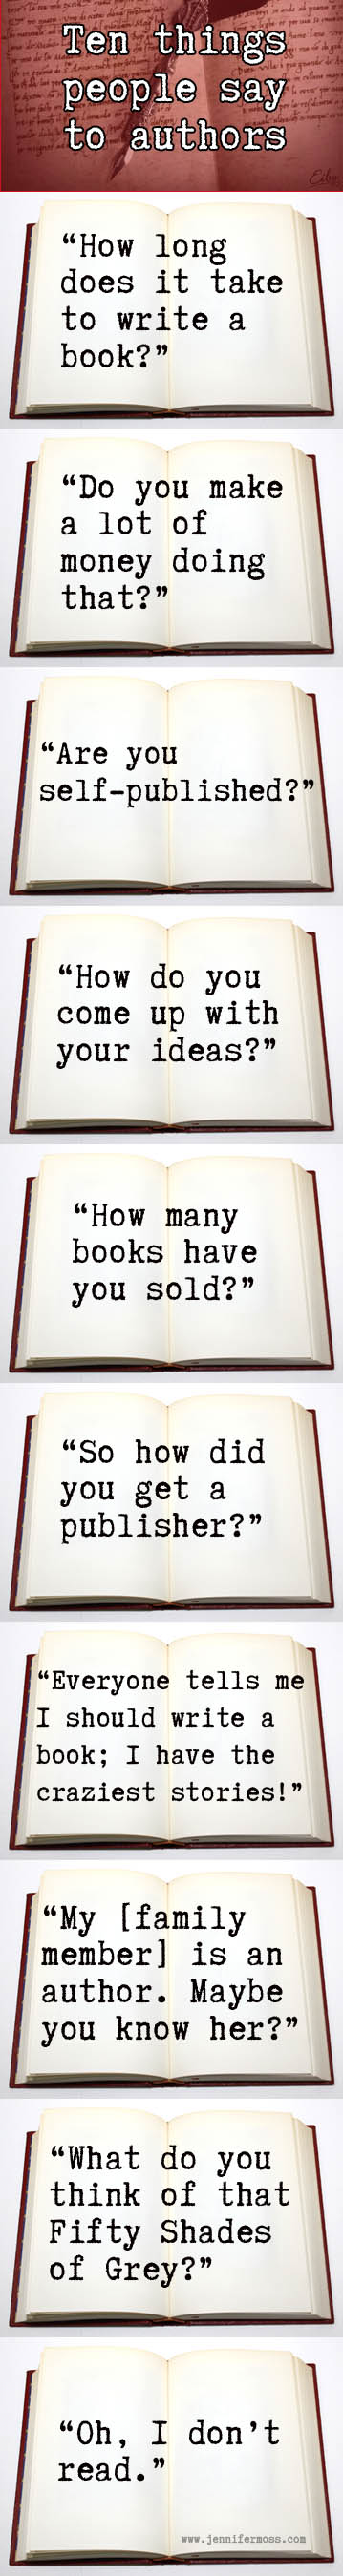 10 Things People Say to Authors